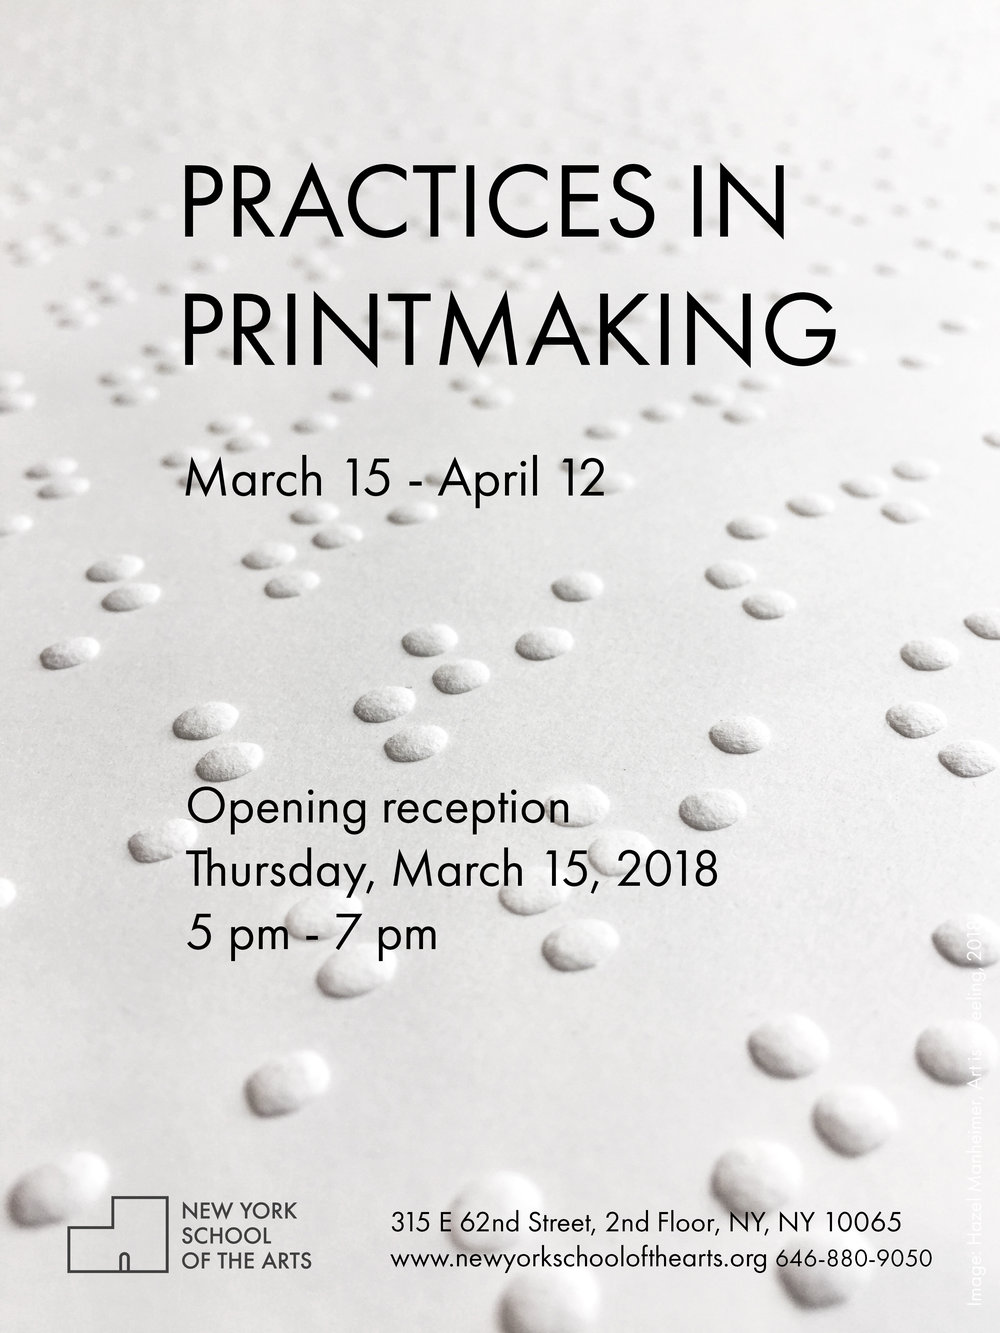 Practices in Printmaking invite.jpg